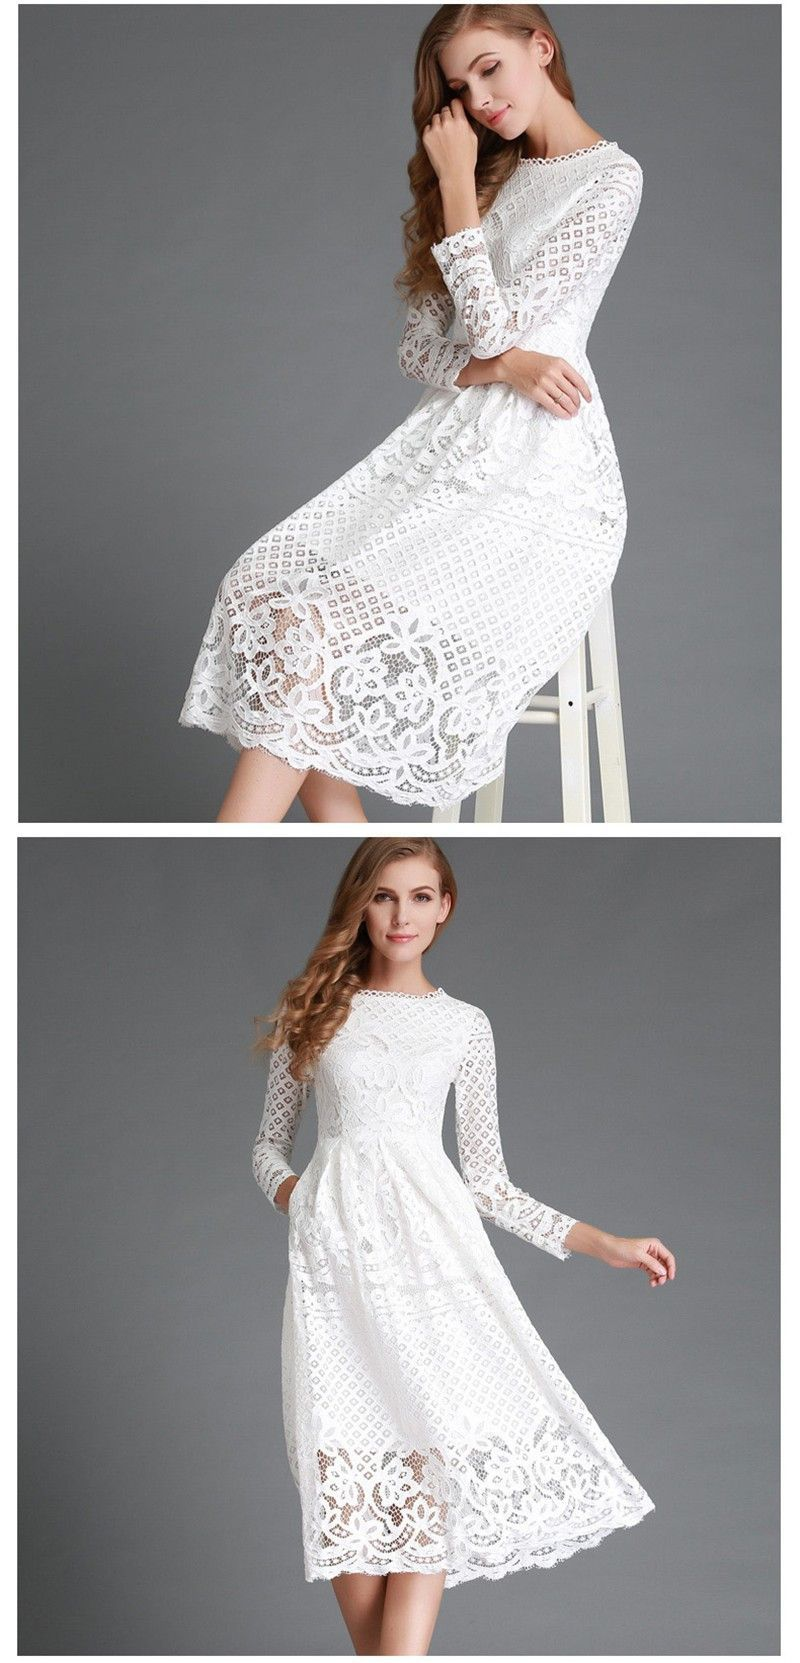 3c723b6d0 2016 Fashion - White Lace Dress with Long Sleeve